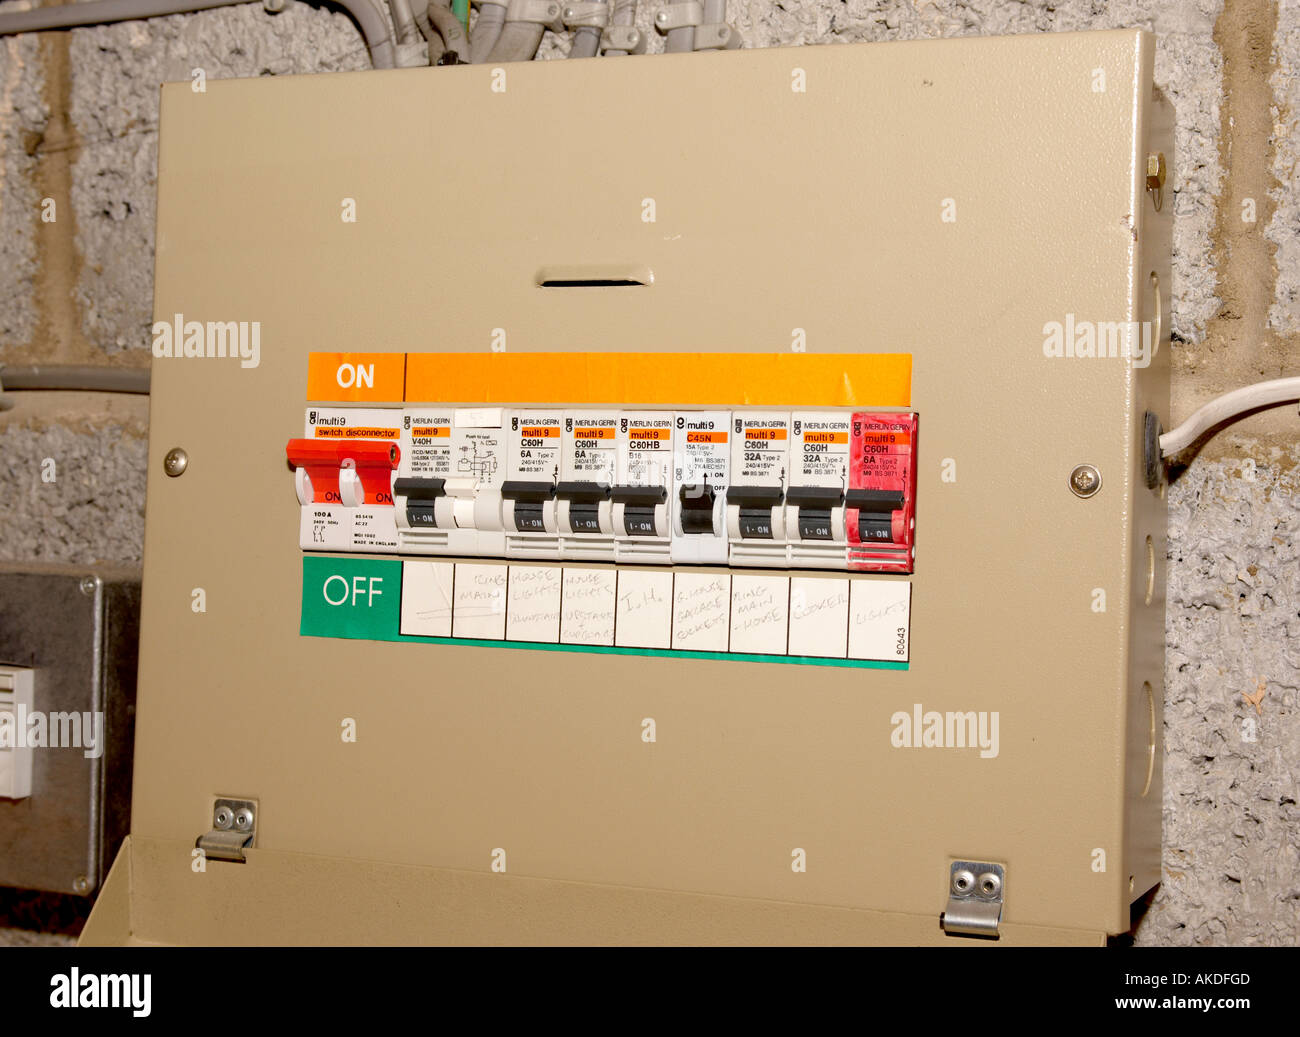 Buss Fuse Box Circuit Builder Wiring Library Breaker Vs Stock Photos Domestic